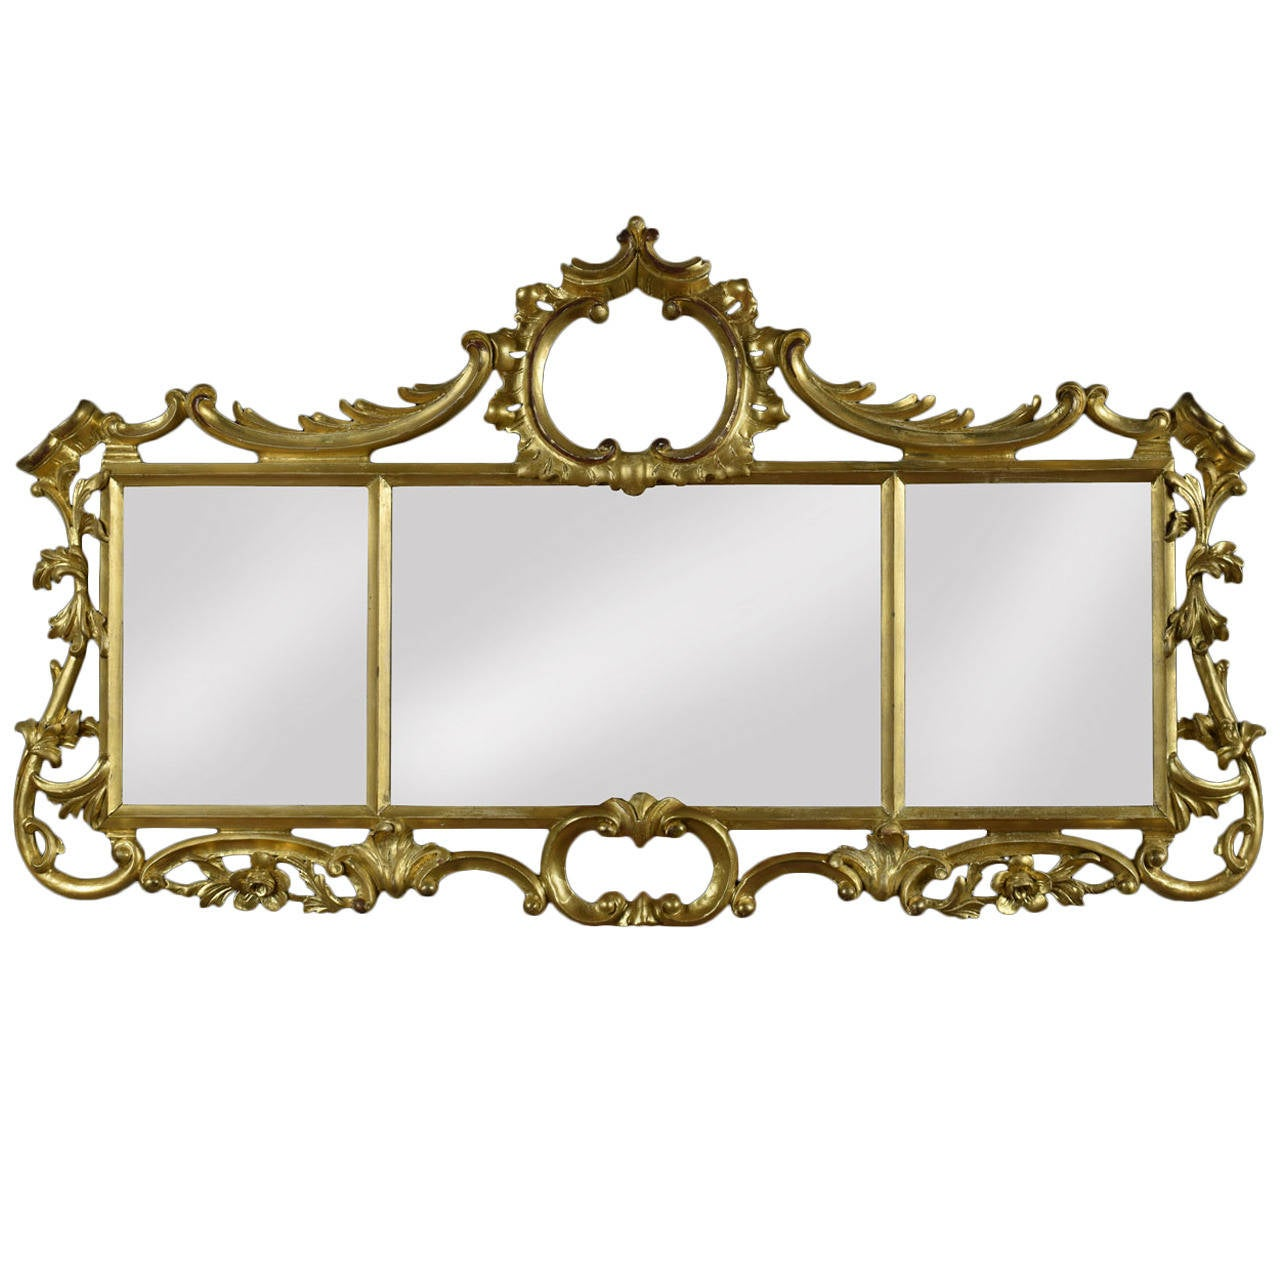 Rococo style giltwood triptych wall mirror at 1stdibs for Baroque style wall mirror